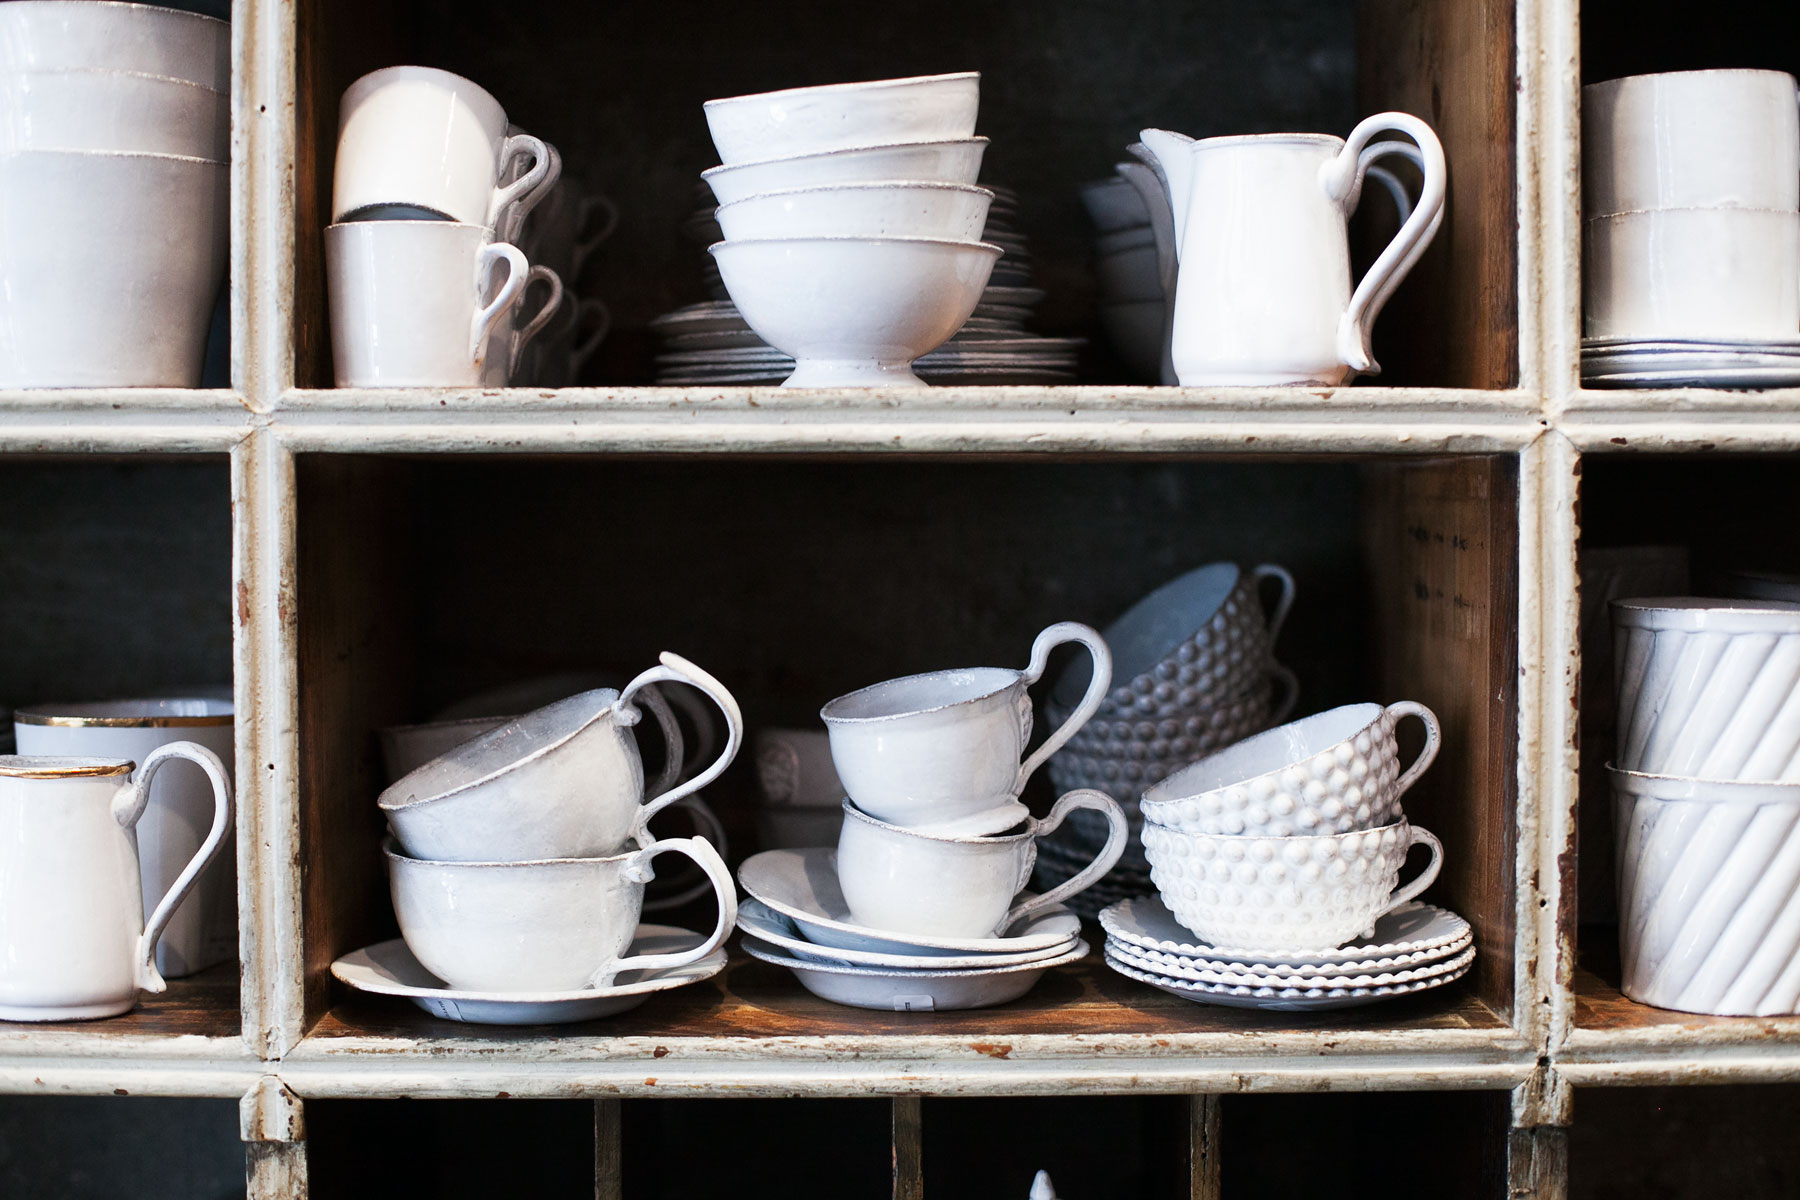 Astier de Villatte by Carin Olsson (Paris in Four Months)